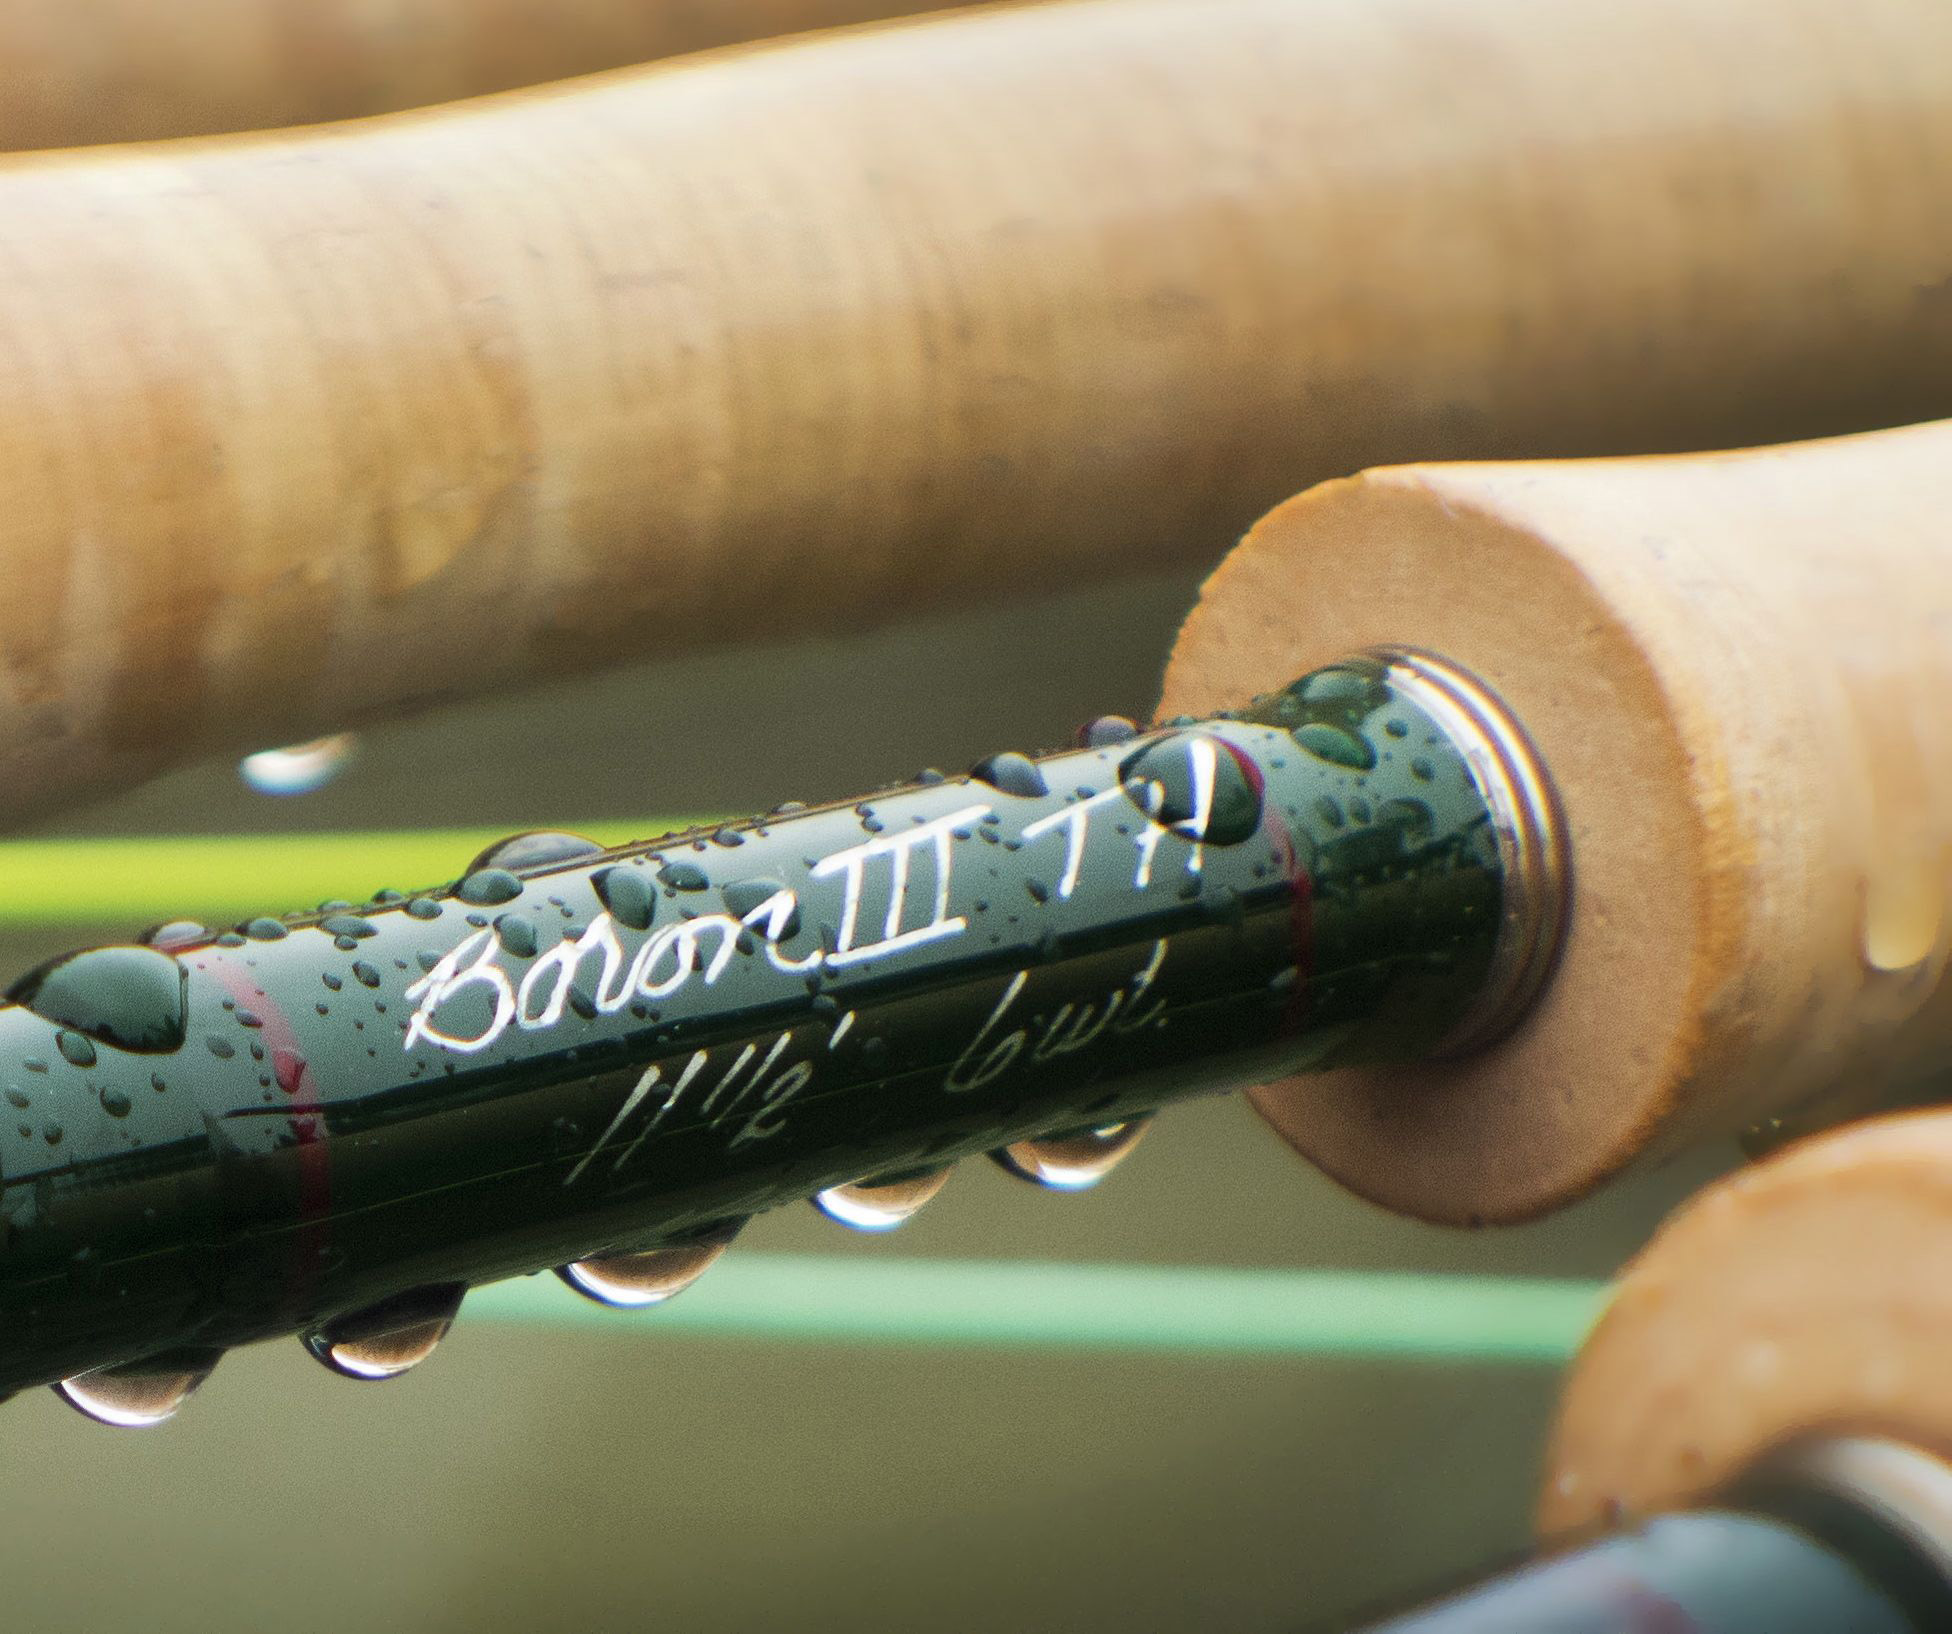 Winston Boron Iii Th Double Handed Fly Rods Glasgow